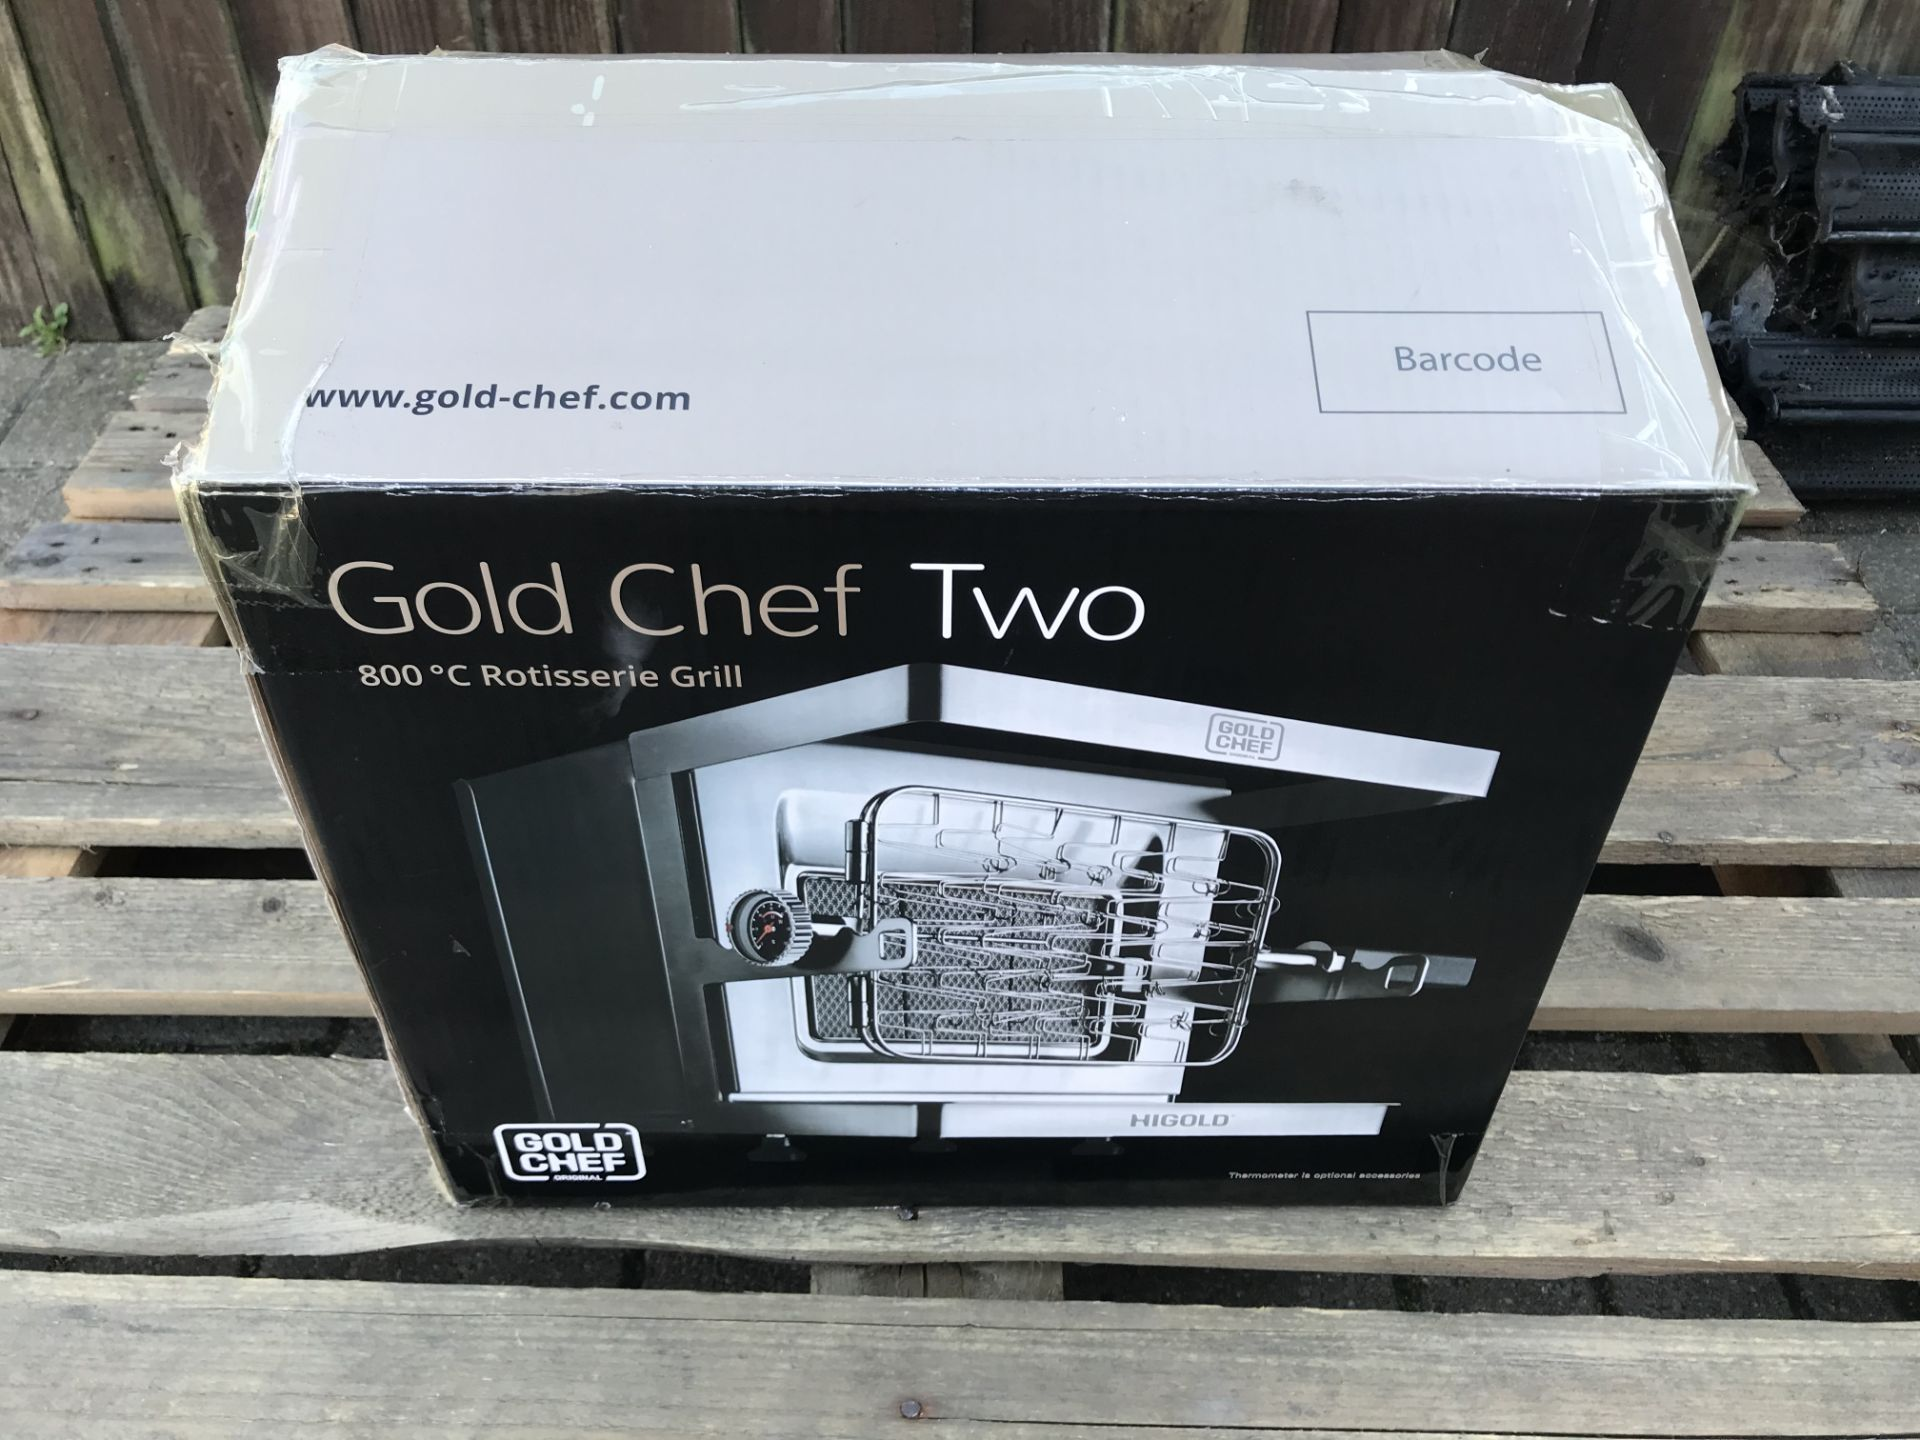 Lot 16 - GOLD CHEF TWO 800C ROTISSERIE GRILL